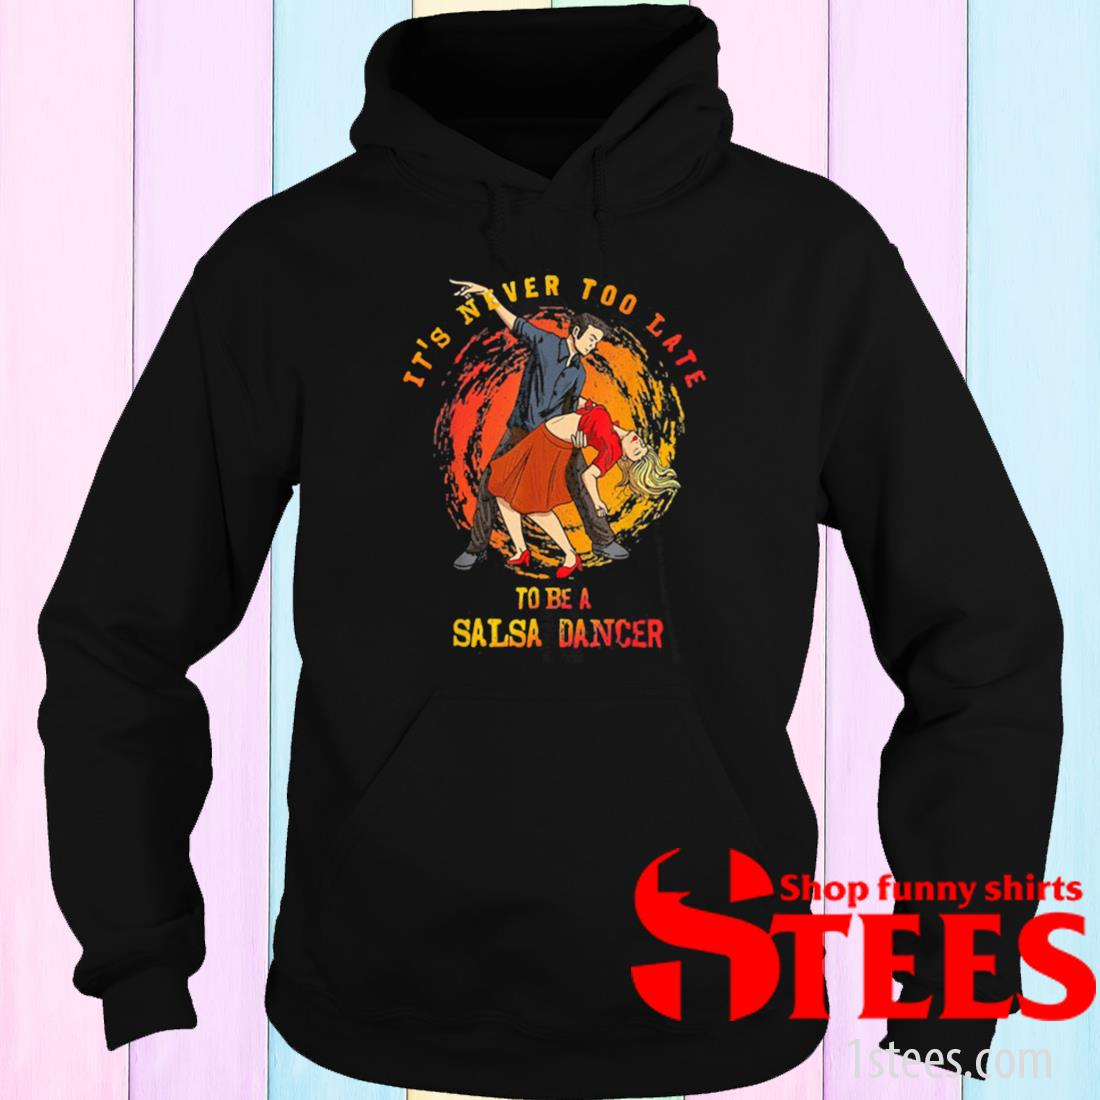 It's Never Too Late To Be A Salsa Dancer Shirt hoodie